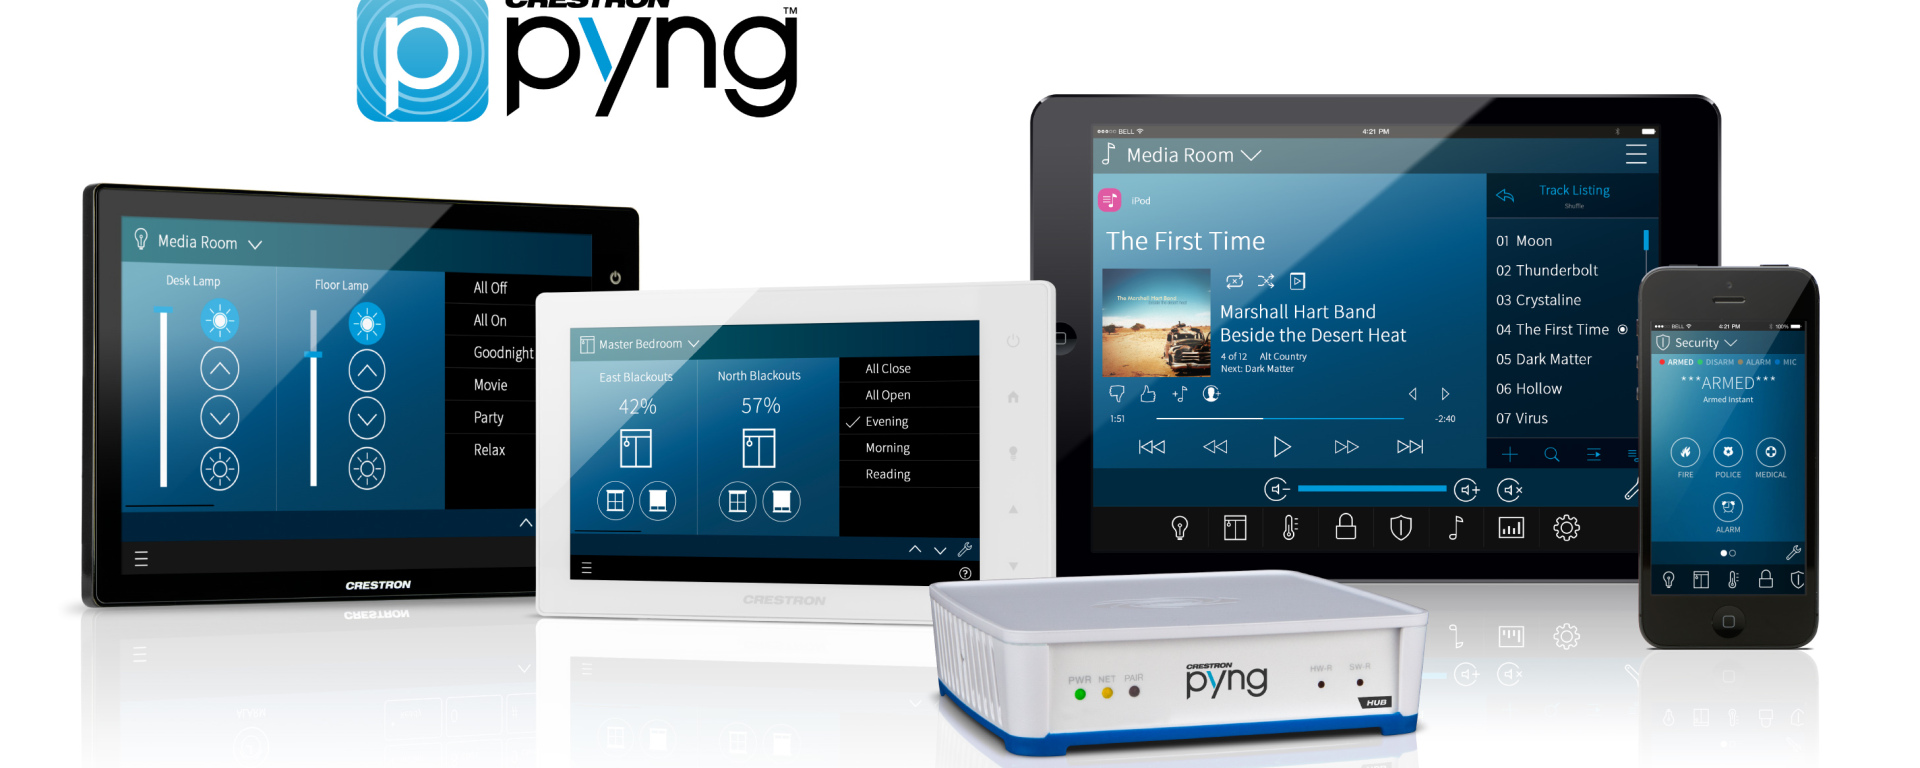 Crestron PYNG App